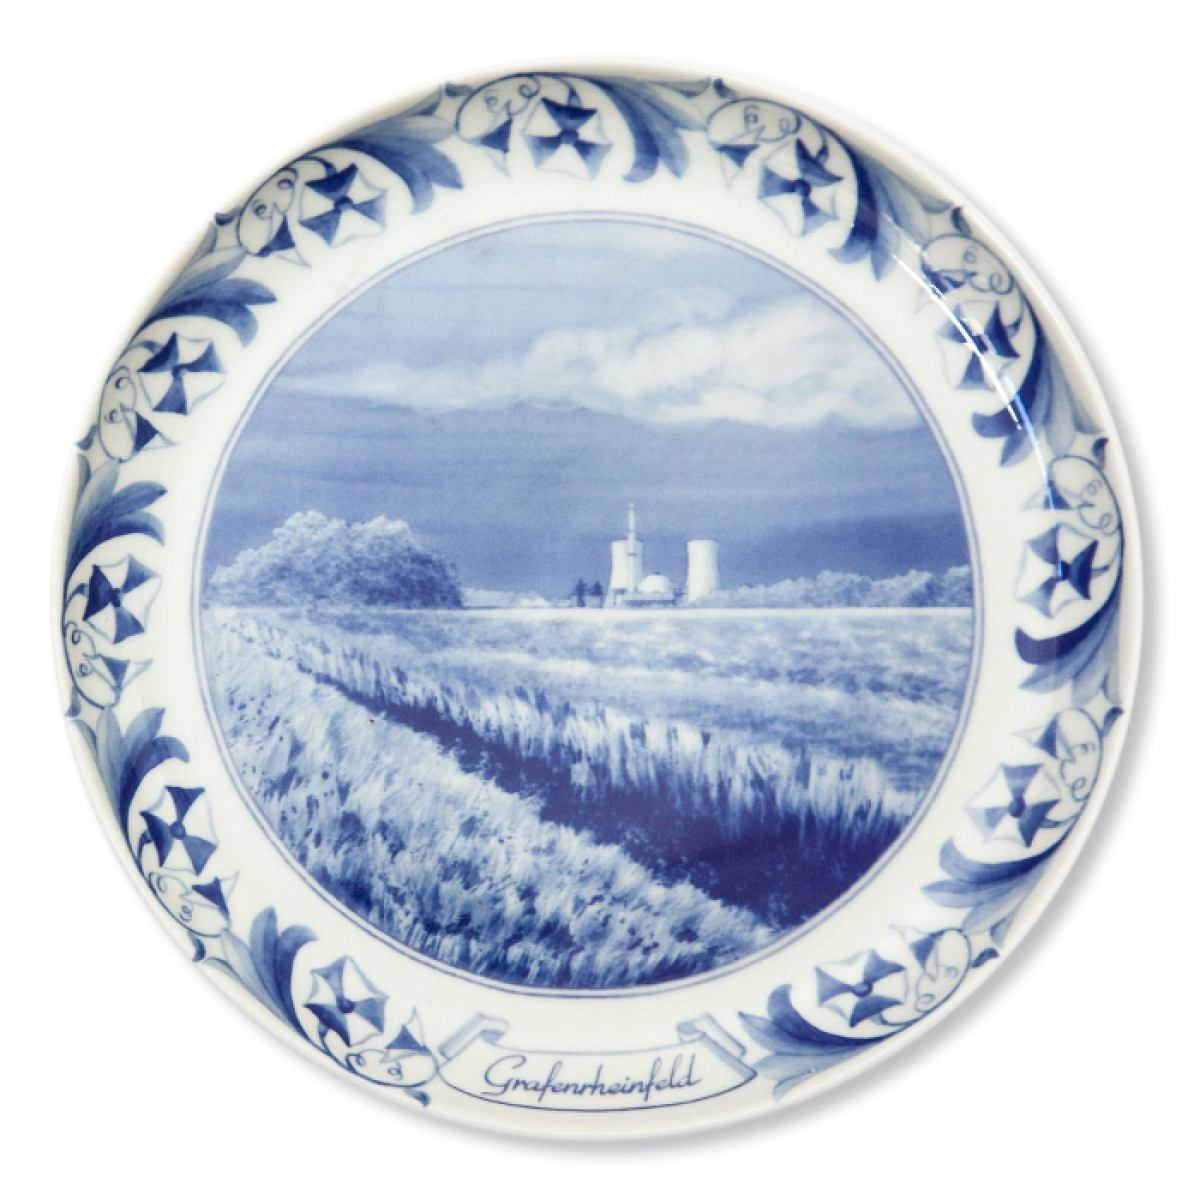 Nuclear Plate Grafenrheinfeld made of porcelain | Kunstbaron